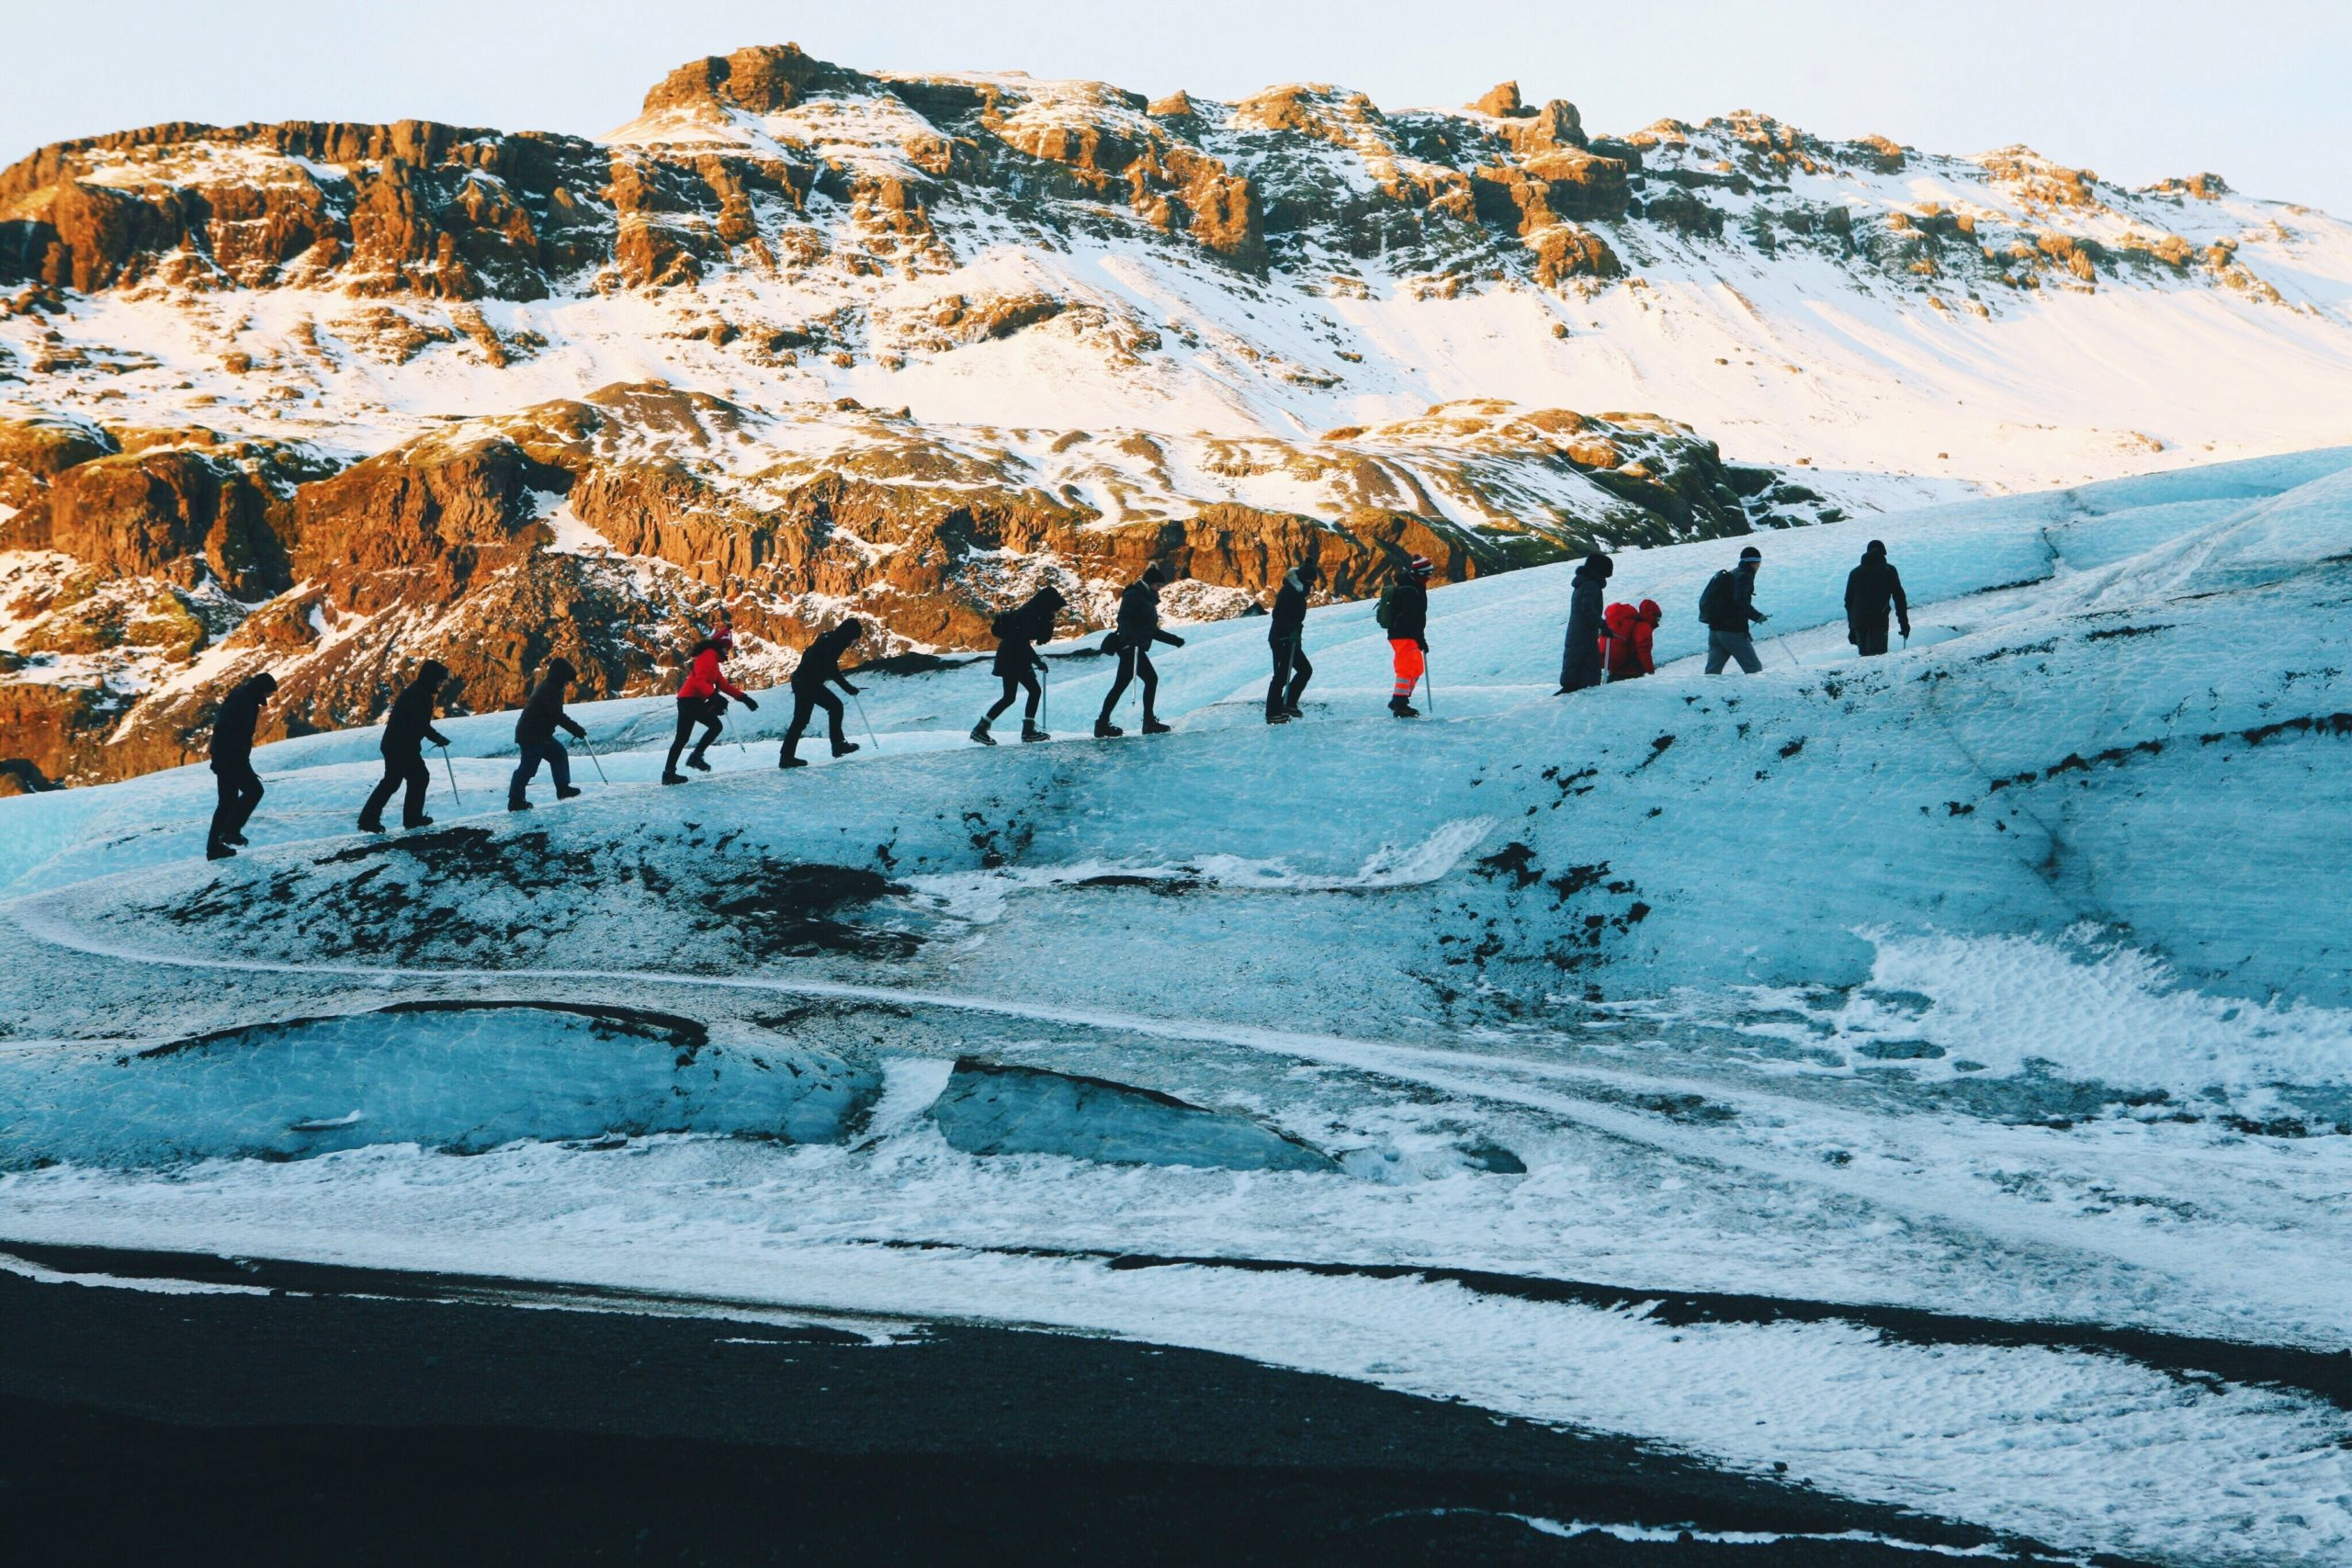 Experience A Glacier Walk On The Solheimajokull Glacier During The Southern Iceland Day Tour